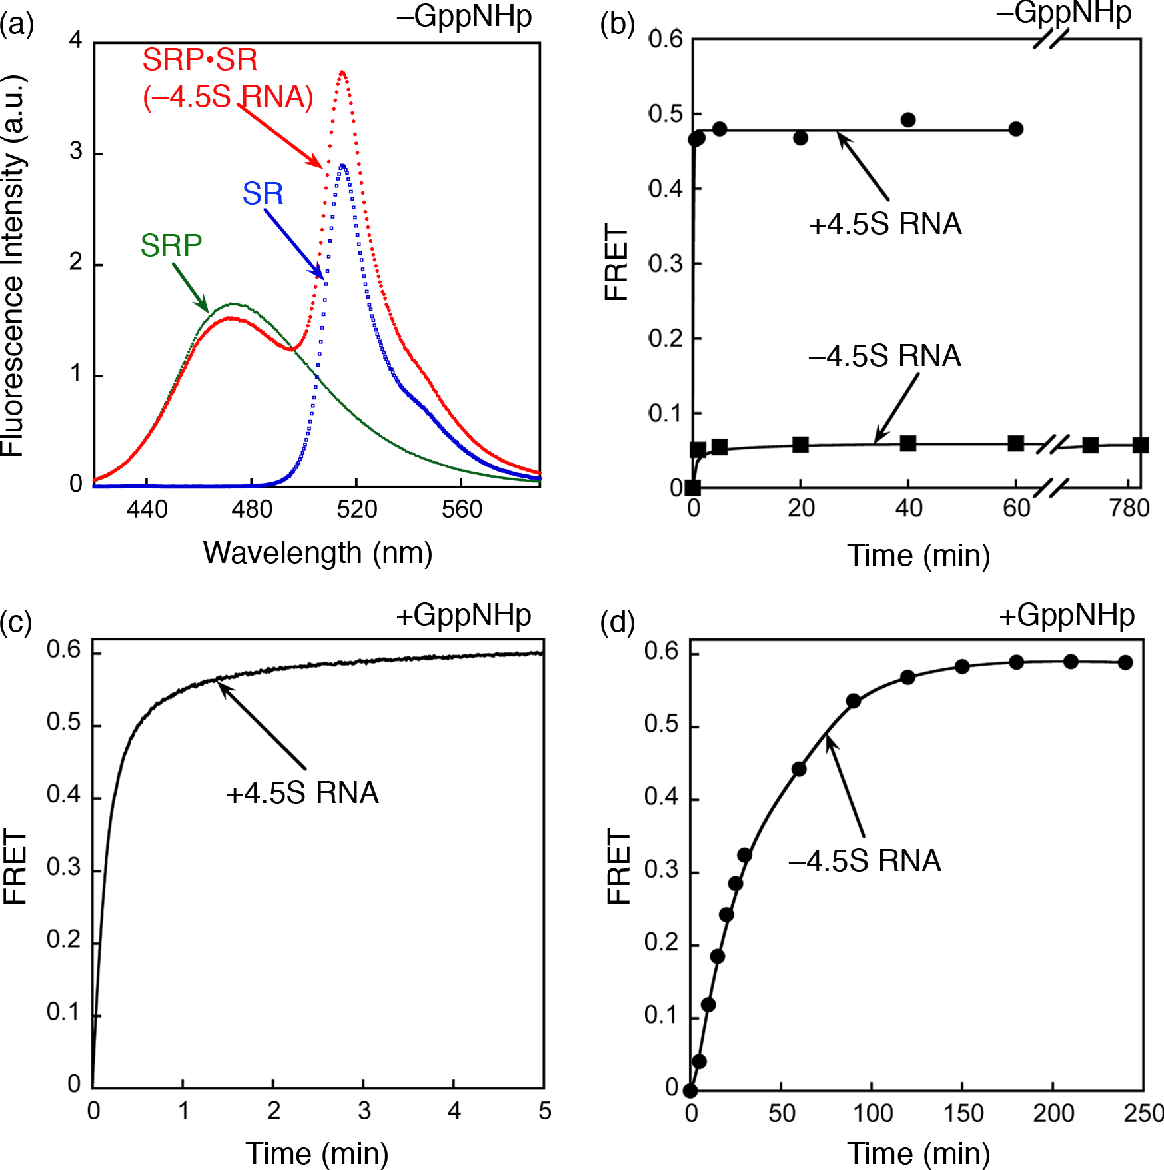 Figure 4. The GTP-independent complex is stabilized by the 4.5S RNA